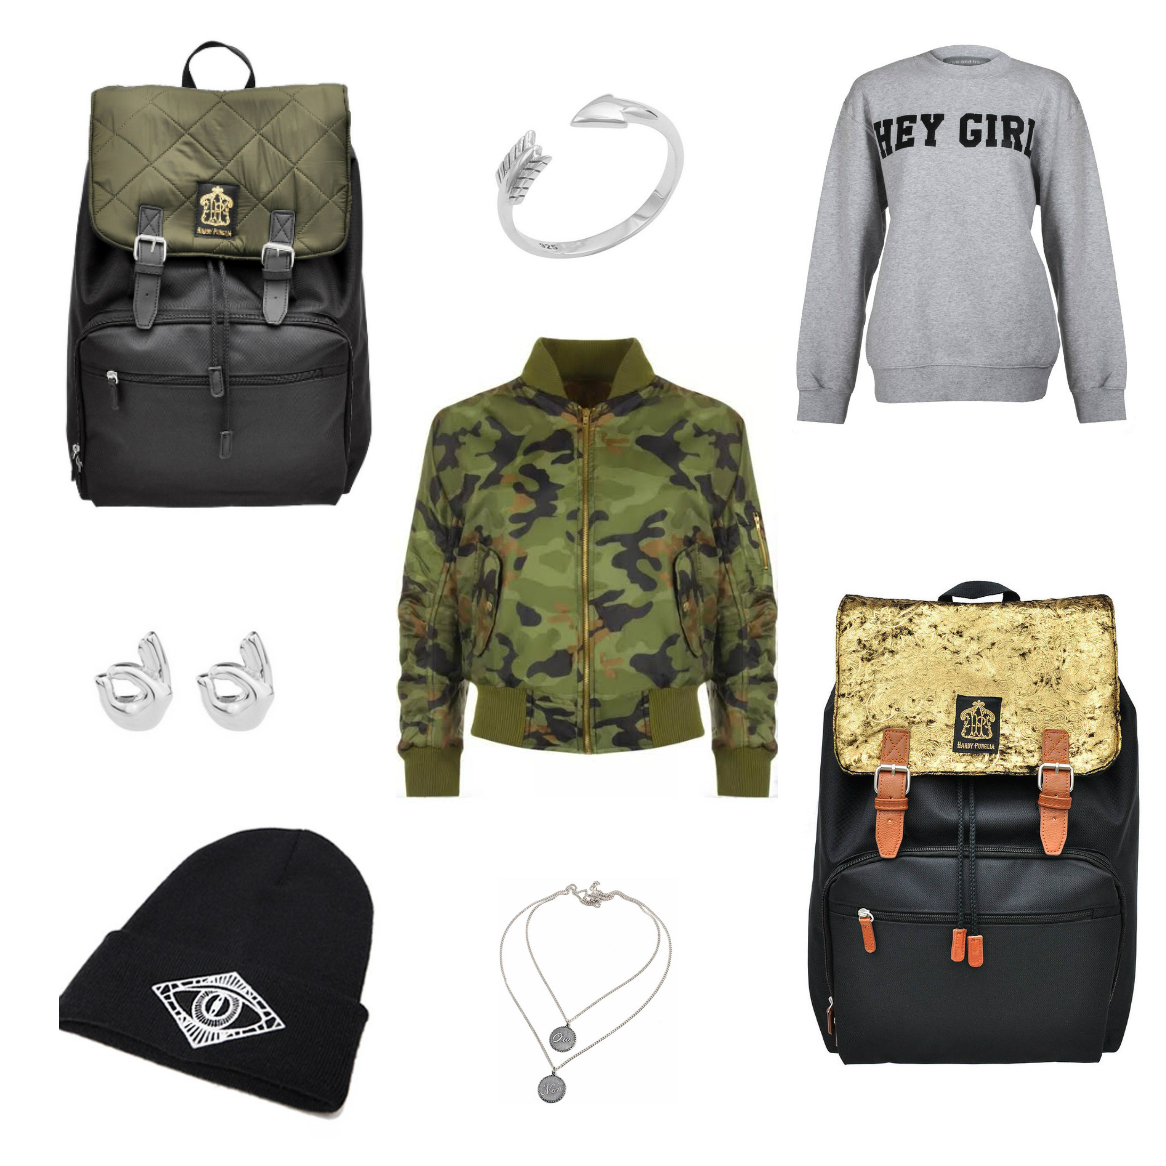 be179c2f526 Over the past few seasons backpacks have witnessed a glorious return to the  fashion scene. It seems that women everywhere are ditching their oversized  totes ...